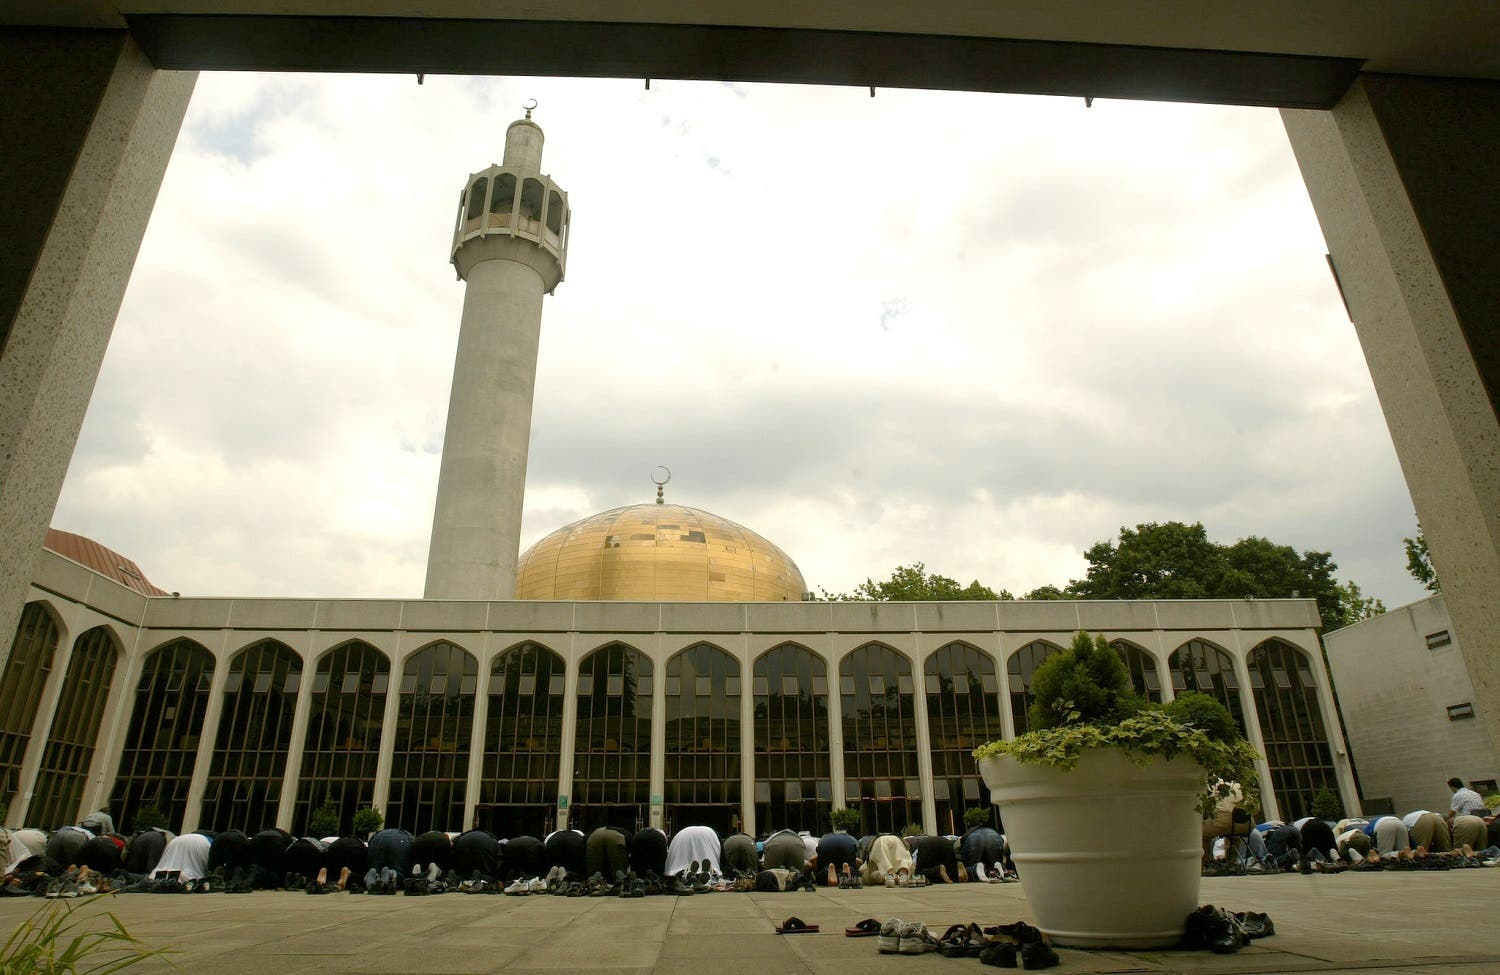 Muslims pray at London's Central Mosque in Regents Park on 15 July 2005. (AFP)